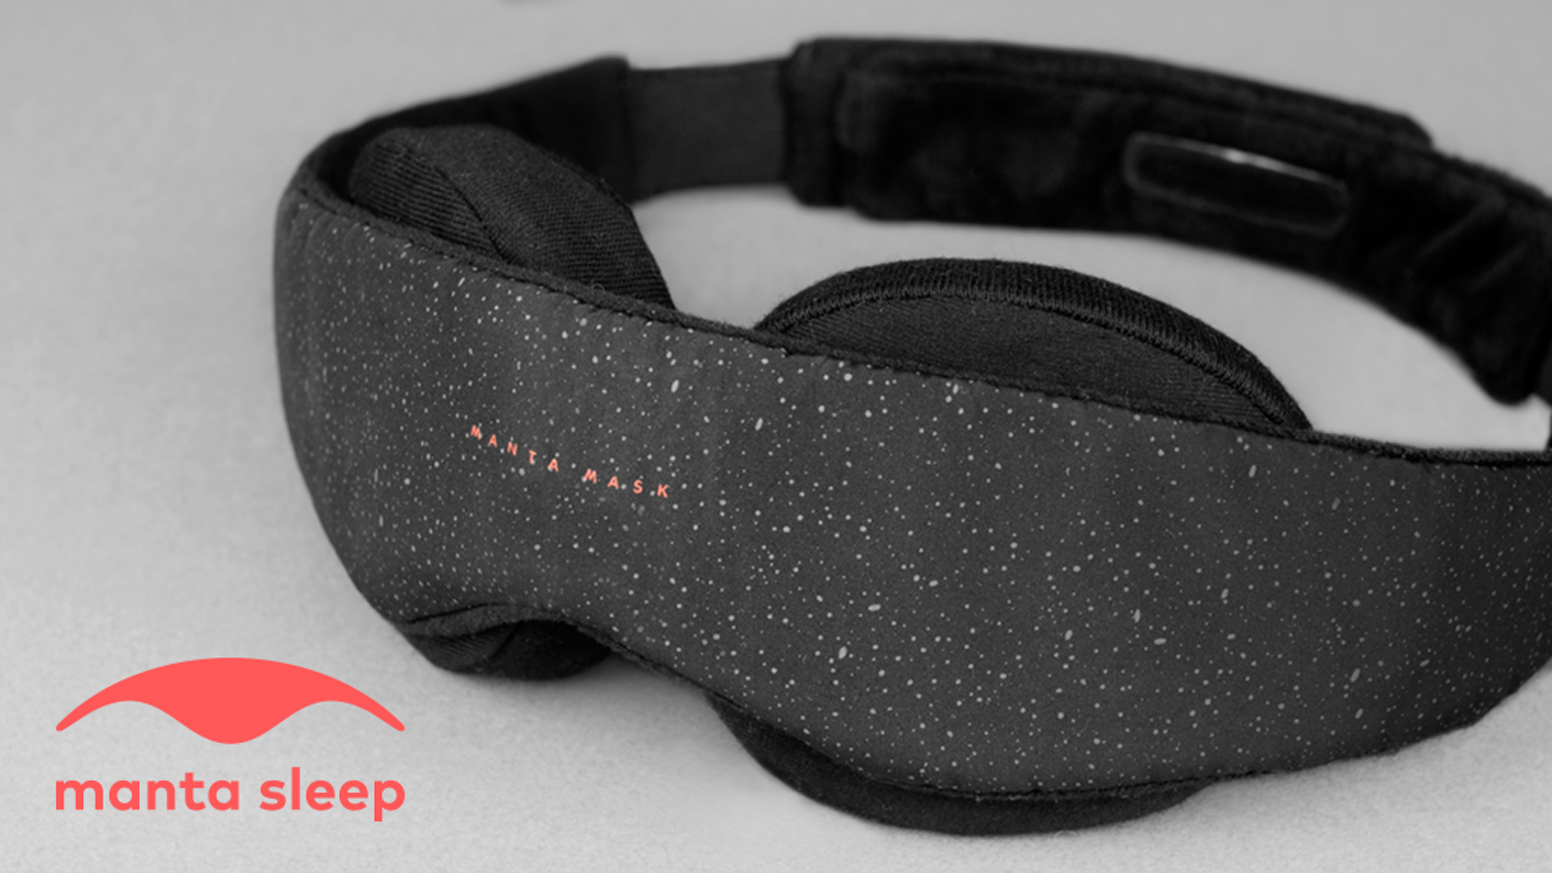 Best Sleep Mask for 100% Blackout. Perfect for Power Nap, Insomnia, Jet Lag. Never Let Poor Sleep Interfere With Your Epic Life Again.